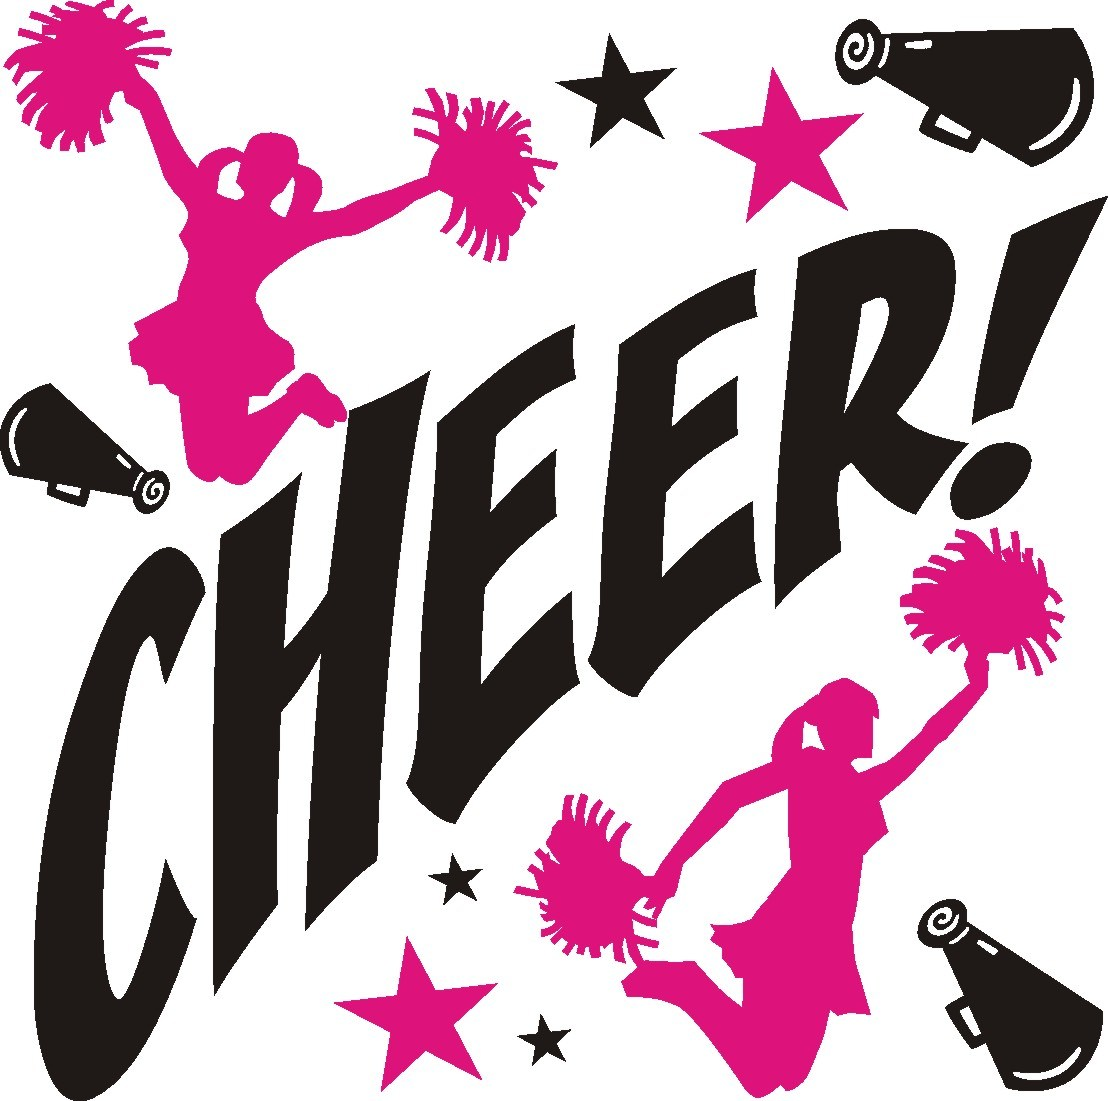 Cheer camp clipart 4 » Clipart Portal.